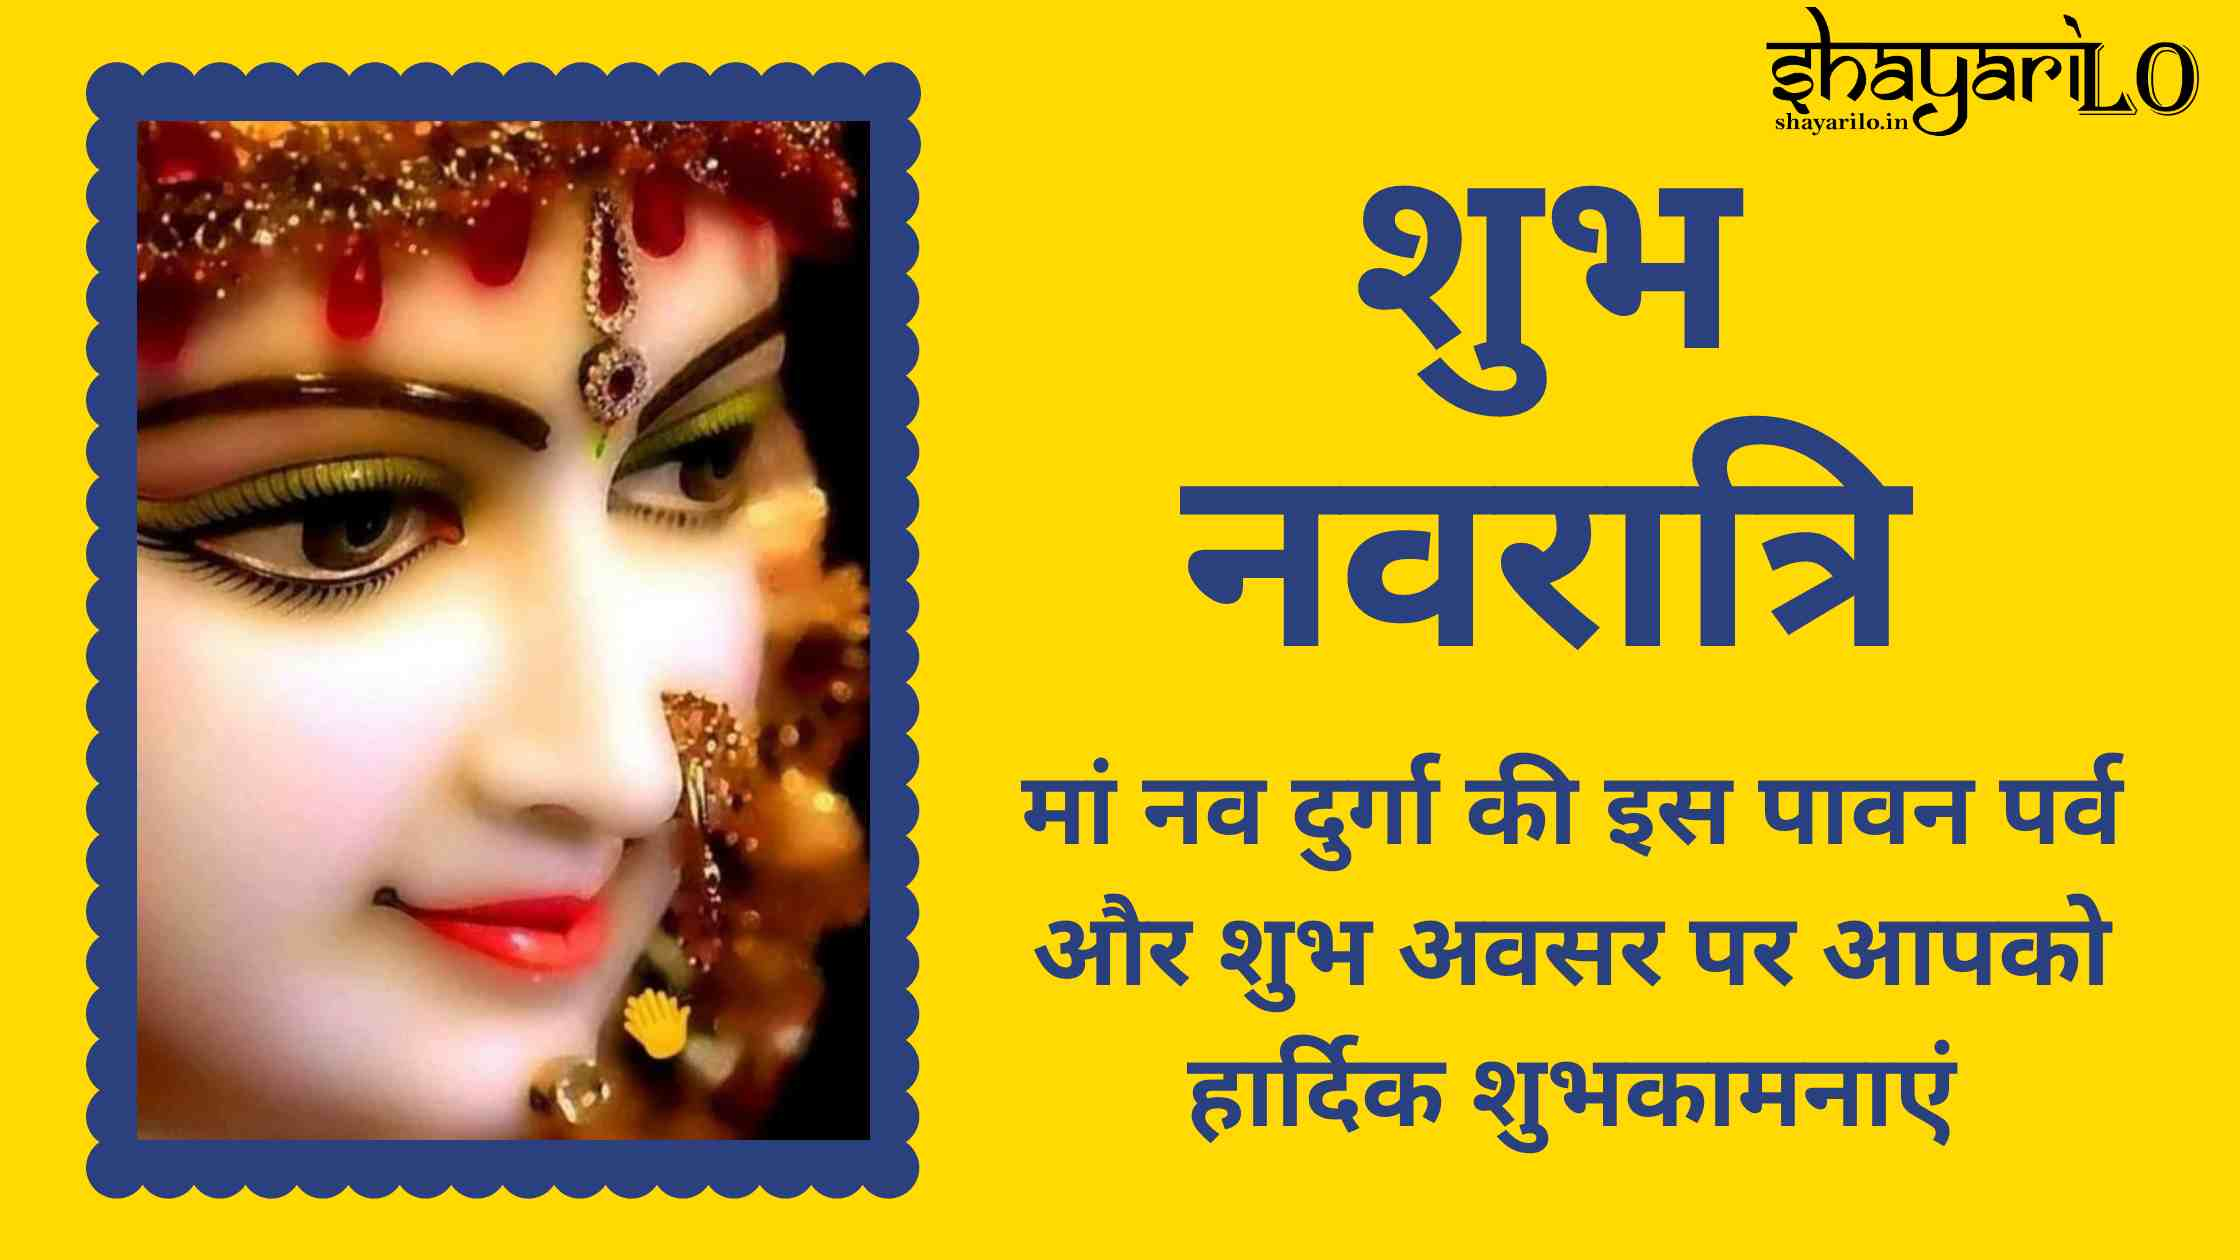 Navratri wishes and greetings